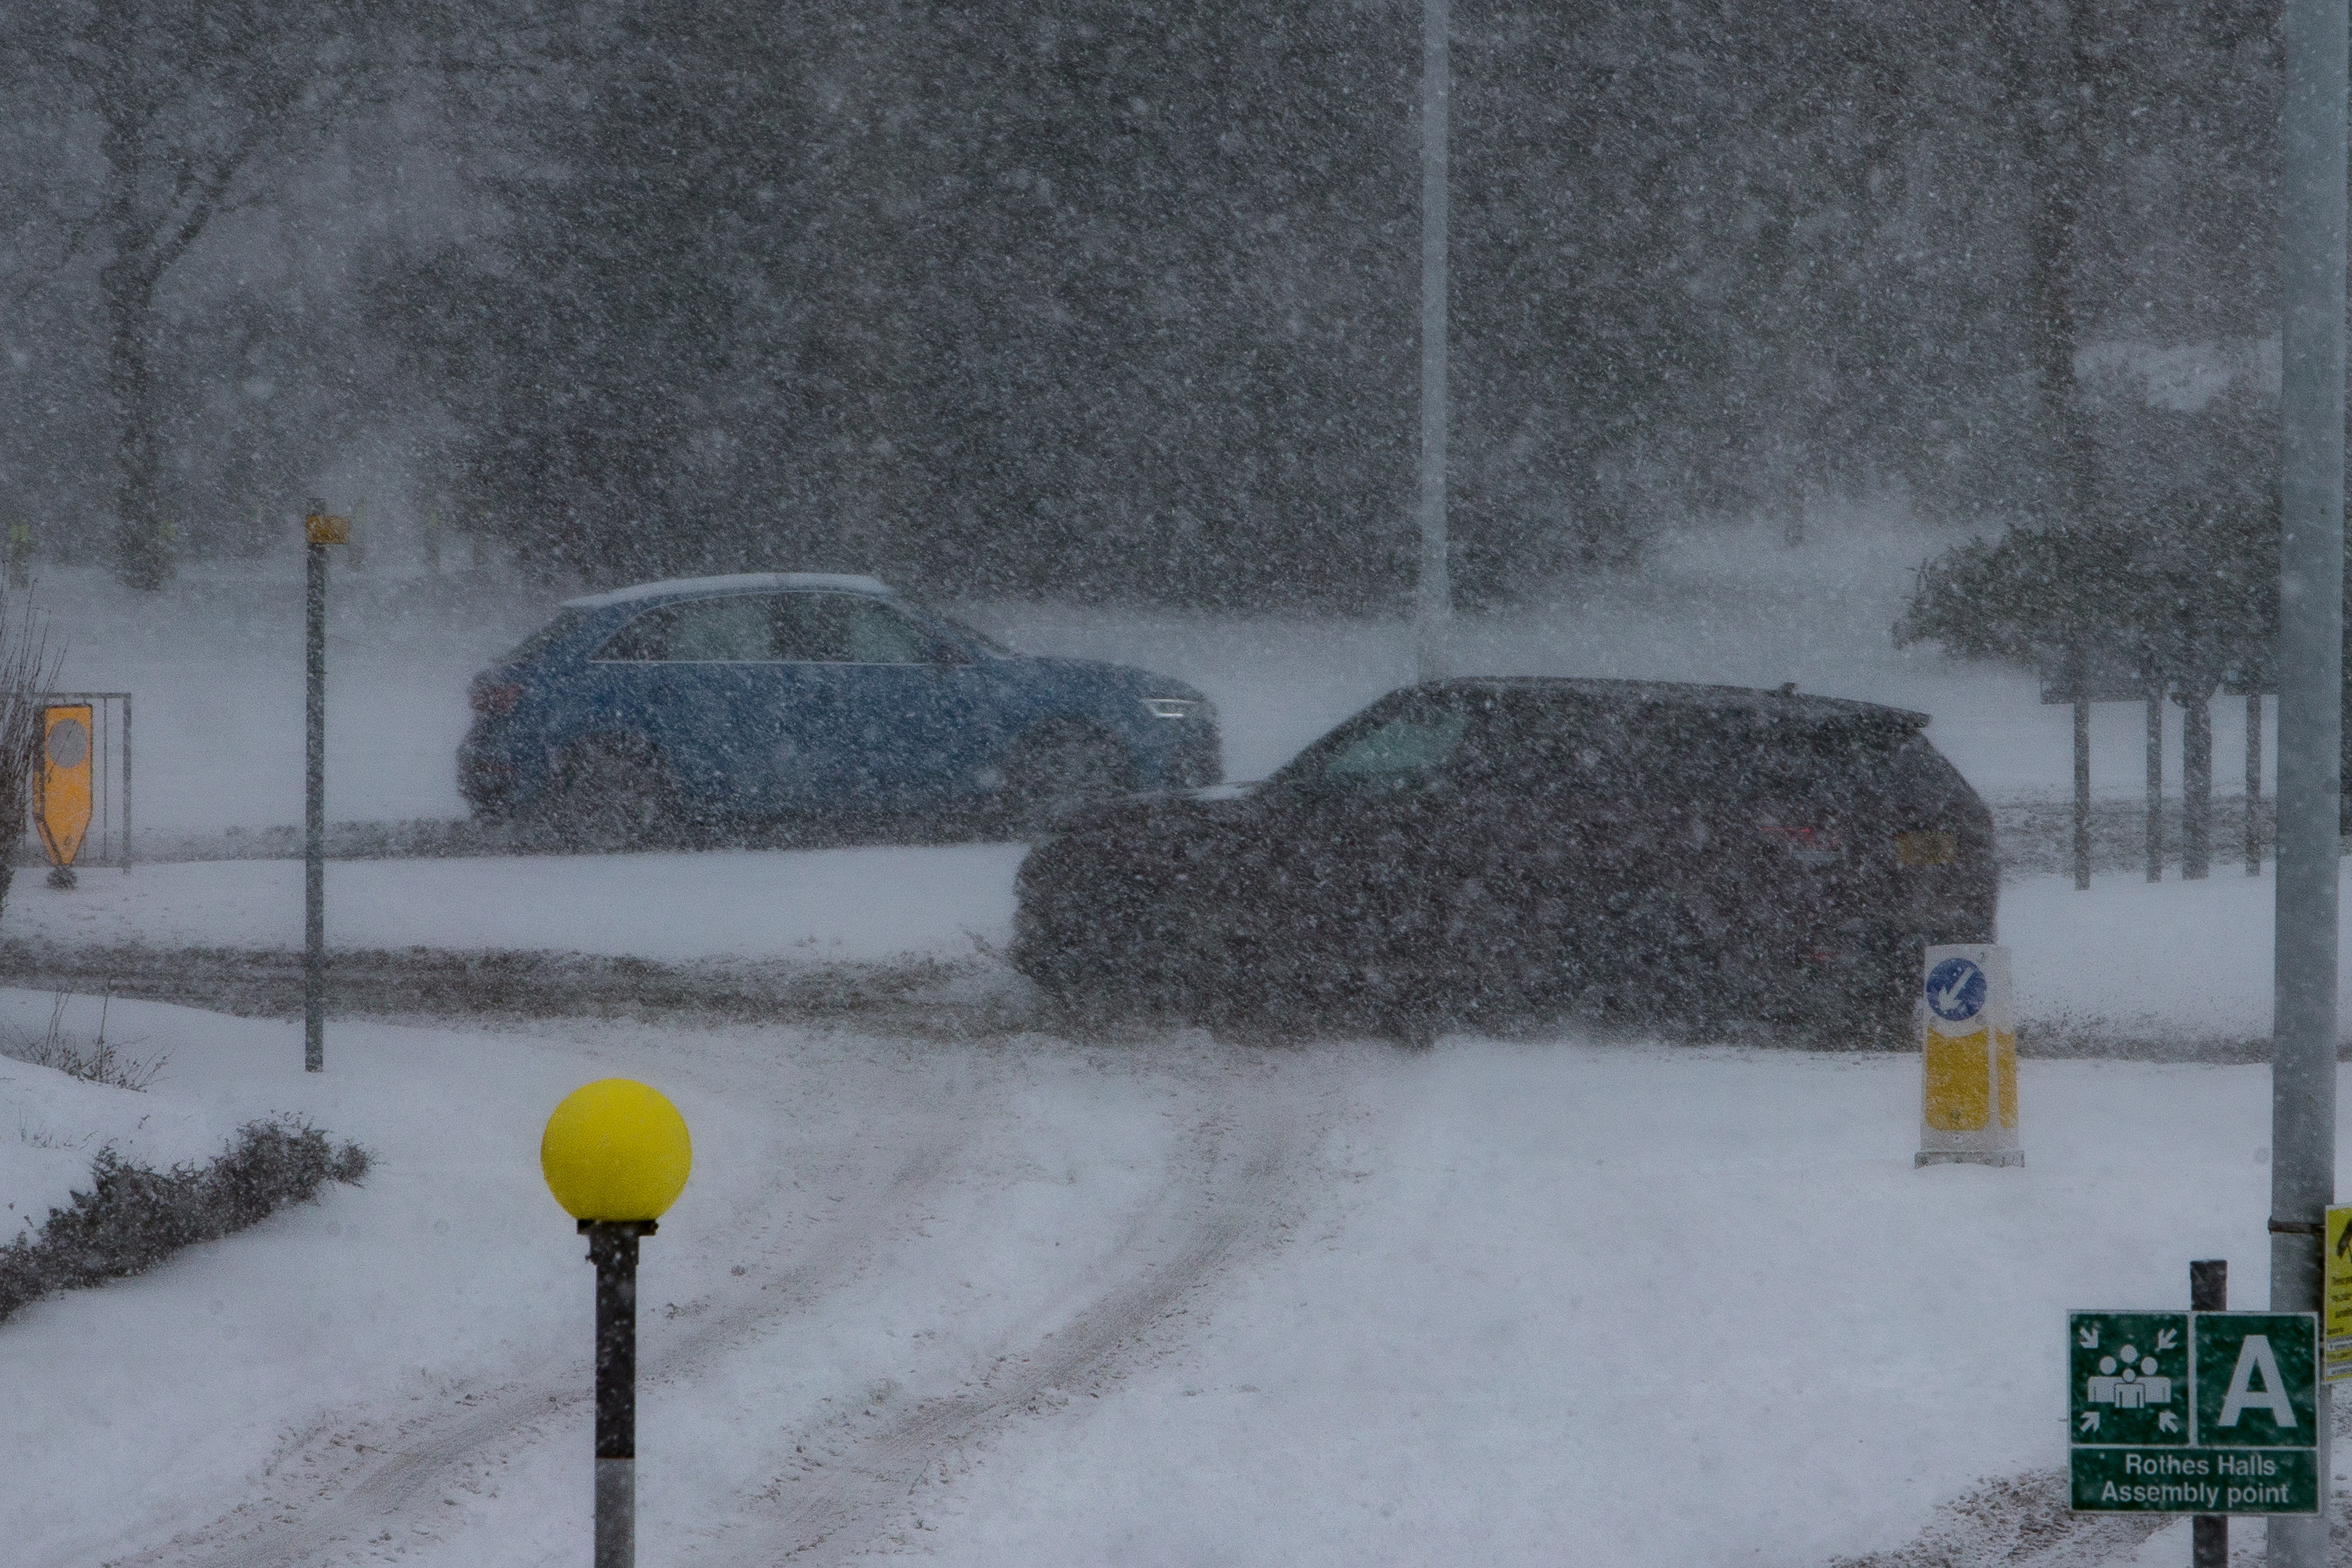 4x4 drivers answered the call to get staff to work during the worst of the weather